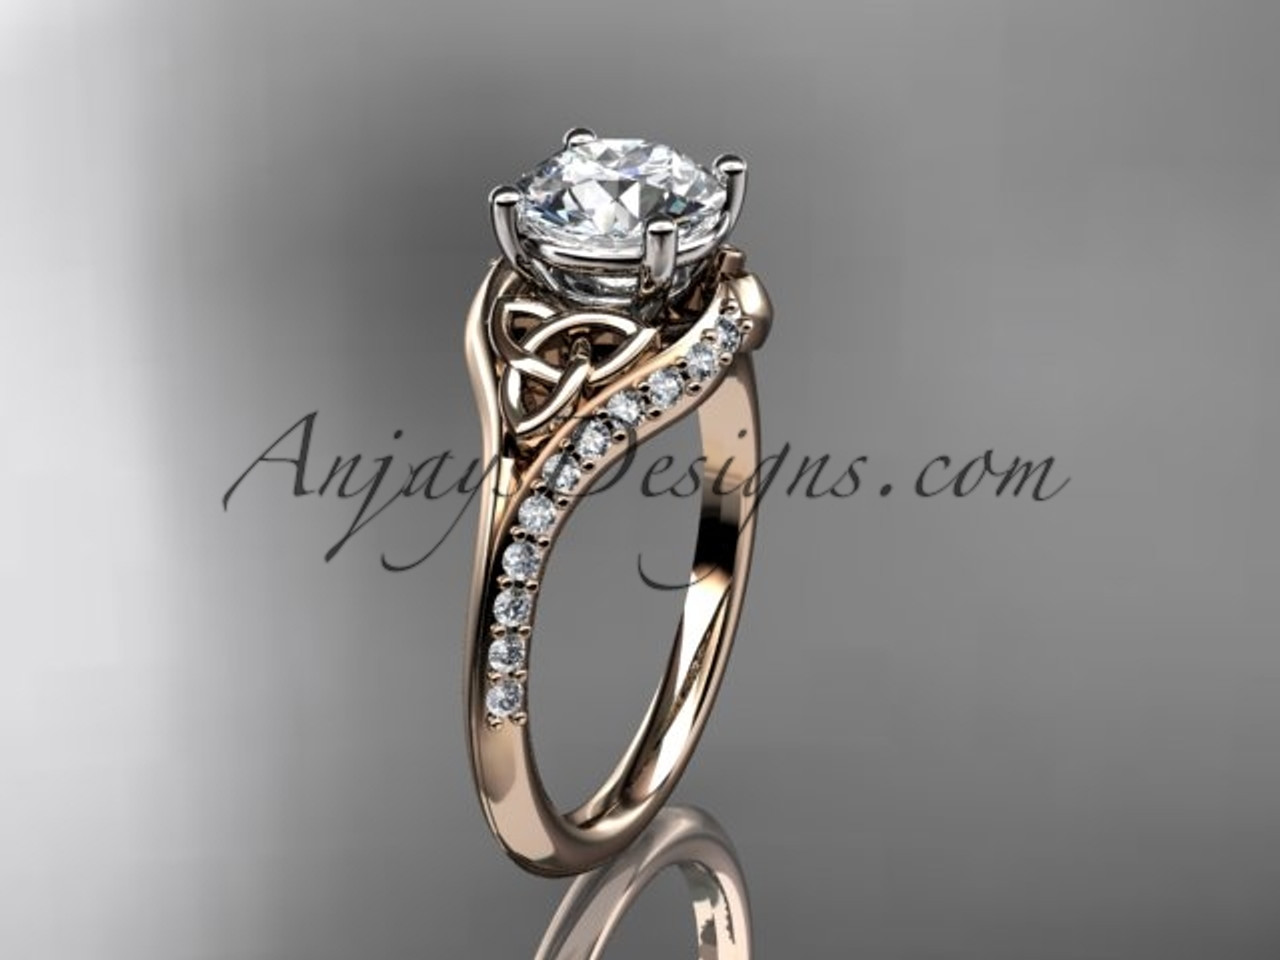 knot three white wedding platinum forever ring diamond engagement band brilliant moissanite stone rings celtic trinity gold